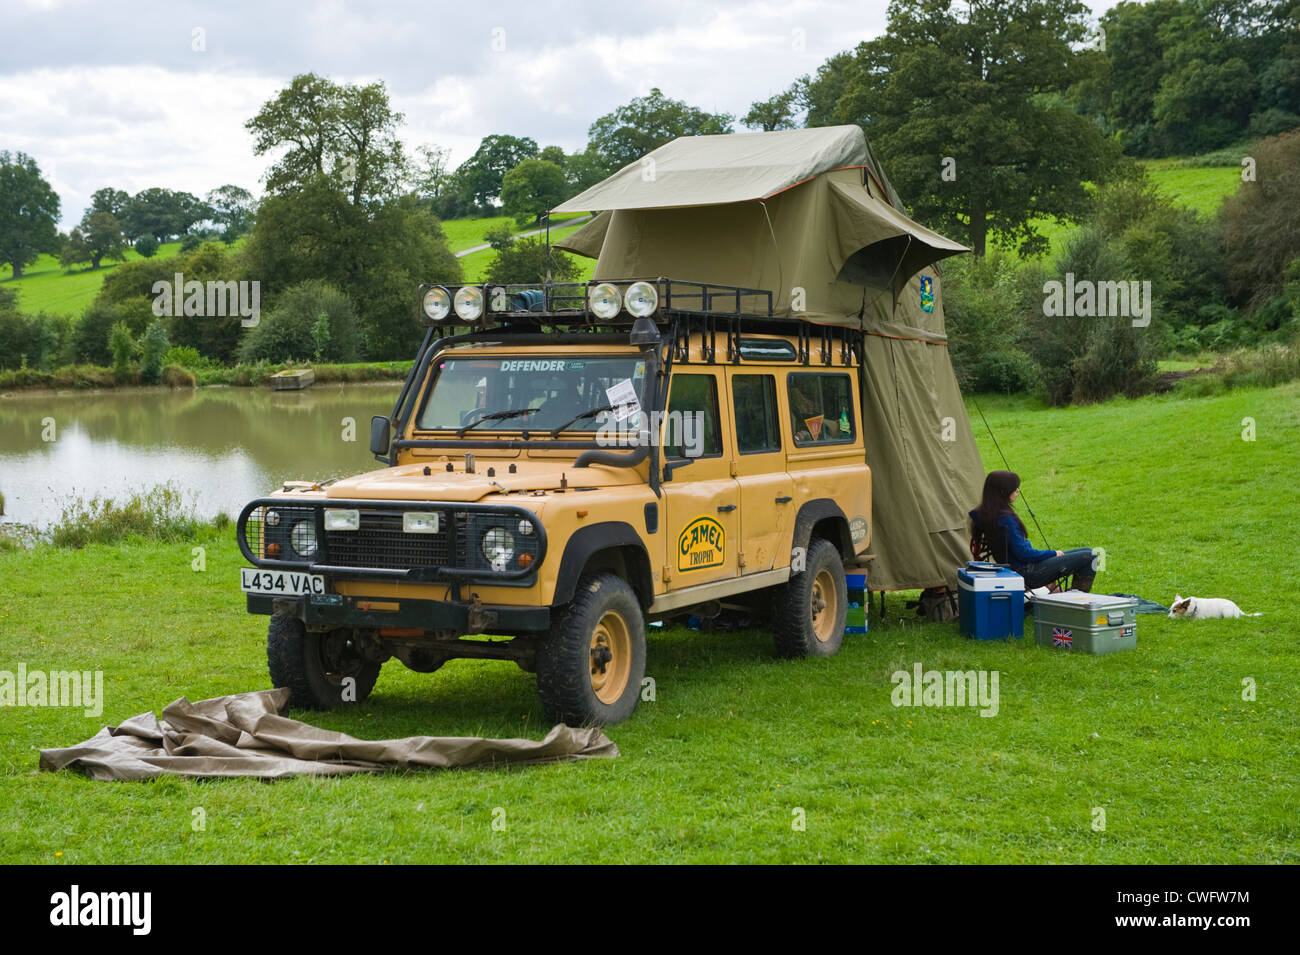 Camel Trophy Land Rover Defender 110 Camping At Lakeside In Stock Photo 50136232 Alamy